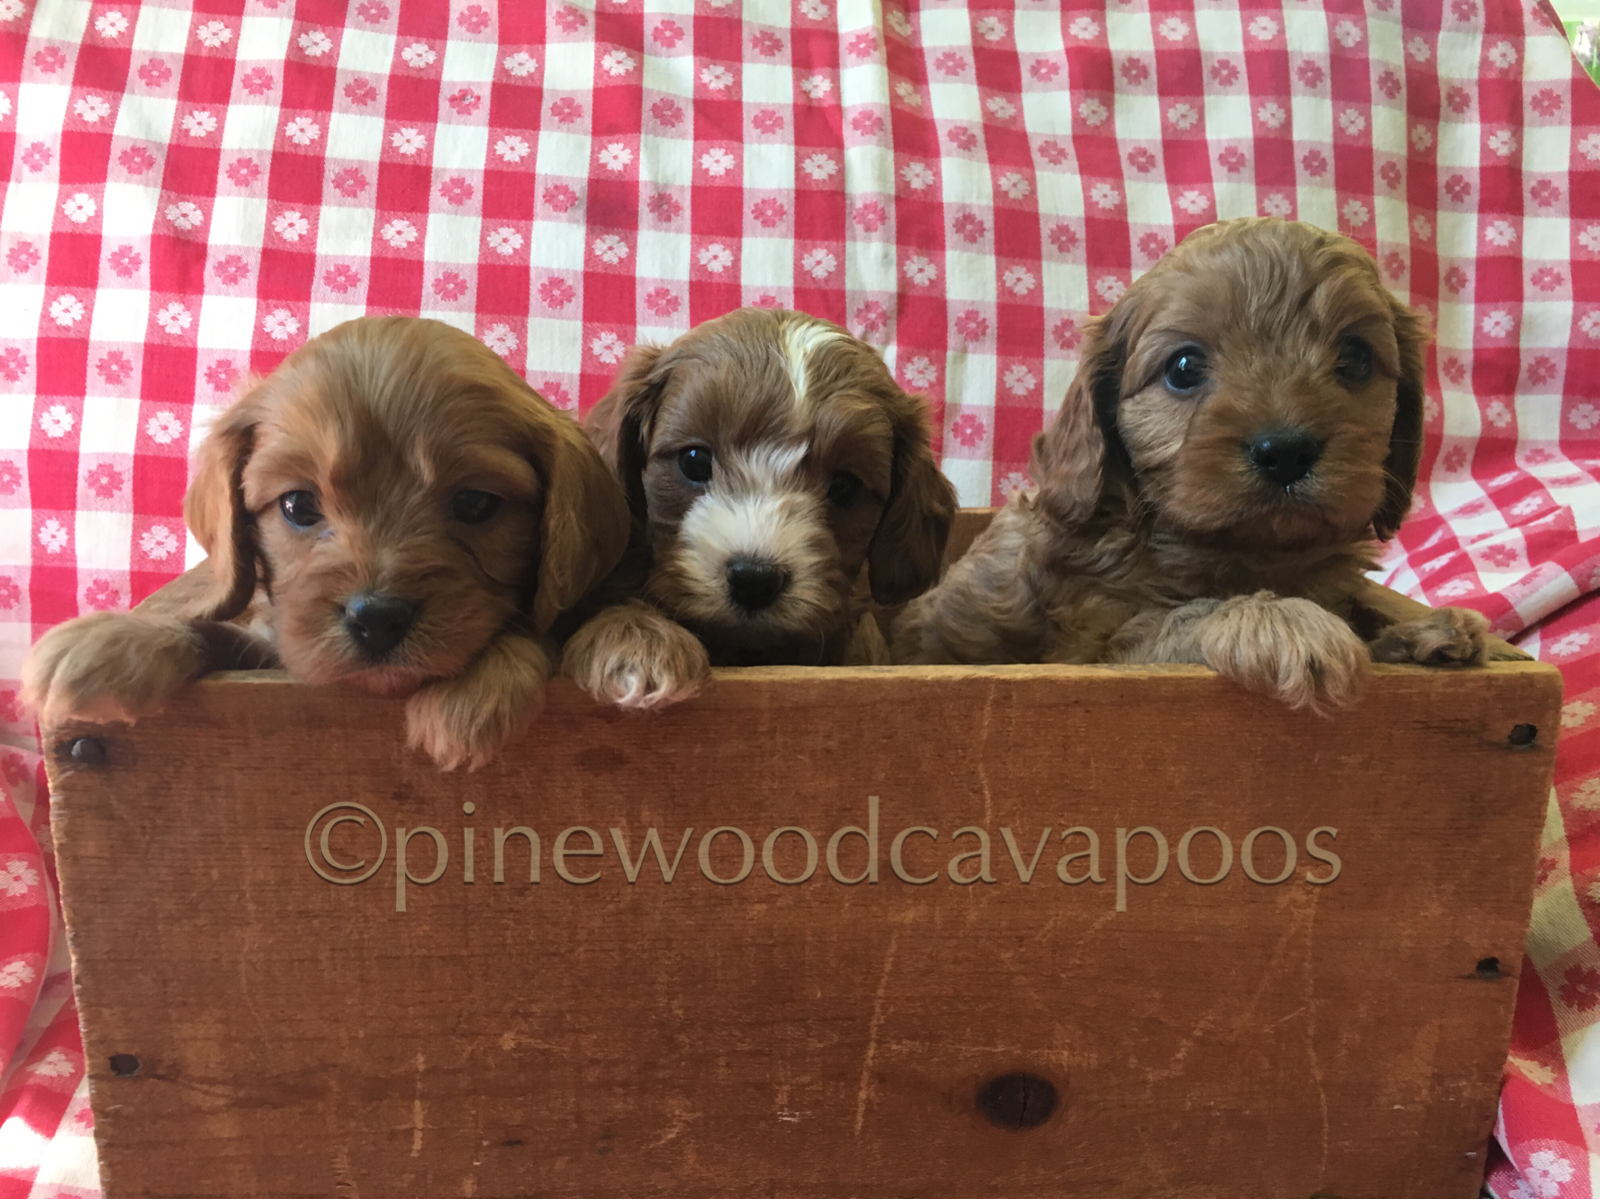 Red Cavapoo Puppies At 5 Weeks Nicole Lucy Harry From Jules Clancy Pinewoodcavapoos Com Cavapoo Puppies Cavapoo Dogs Puppies